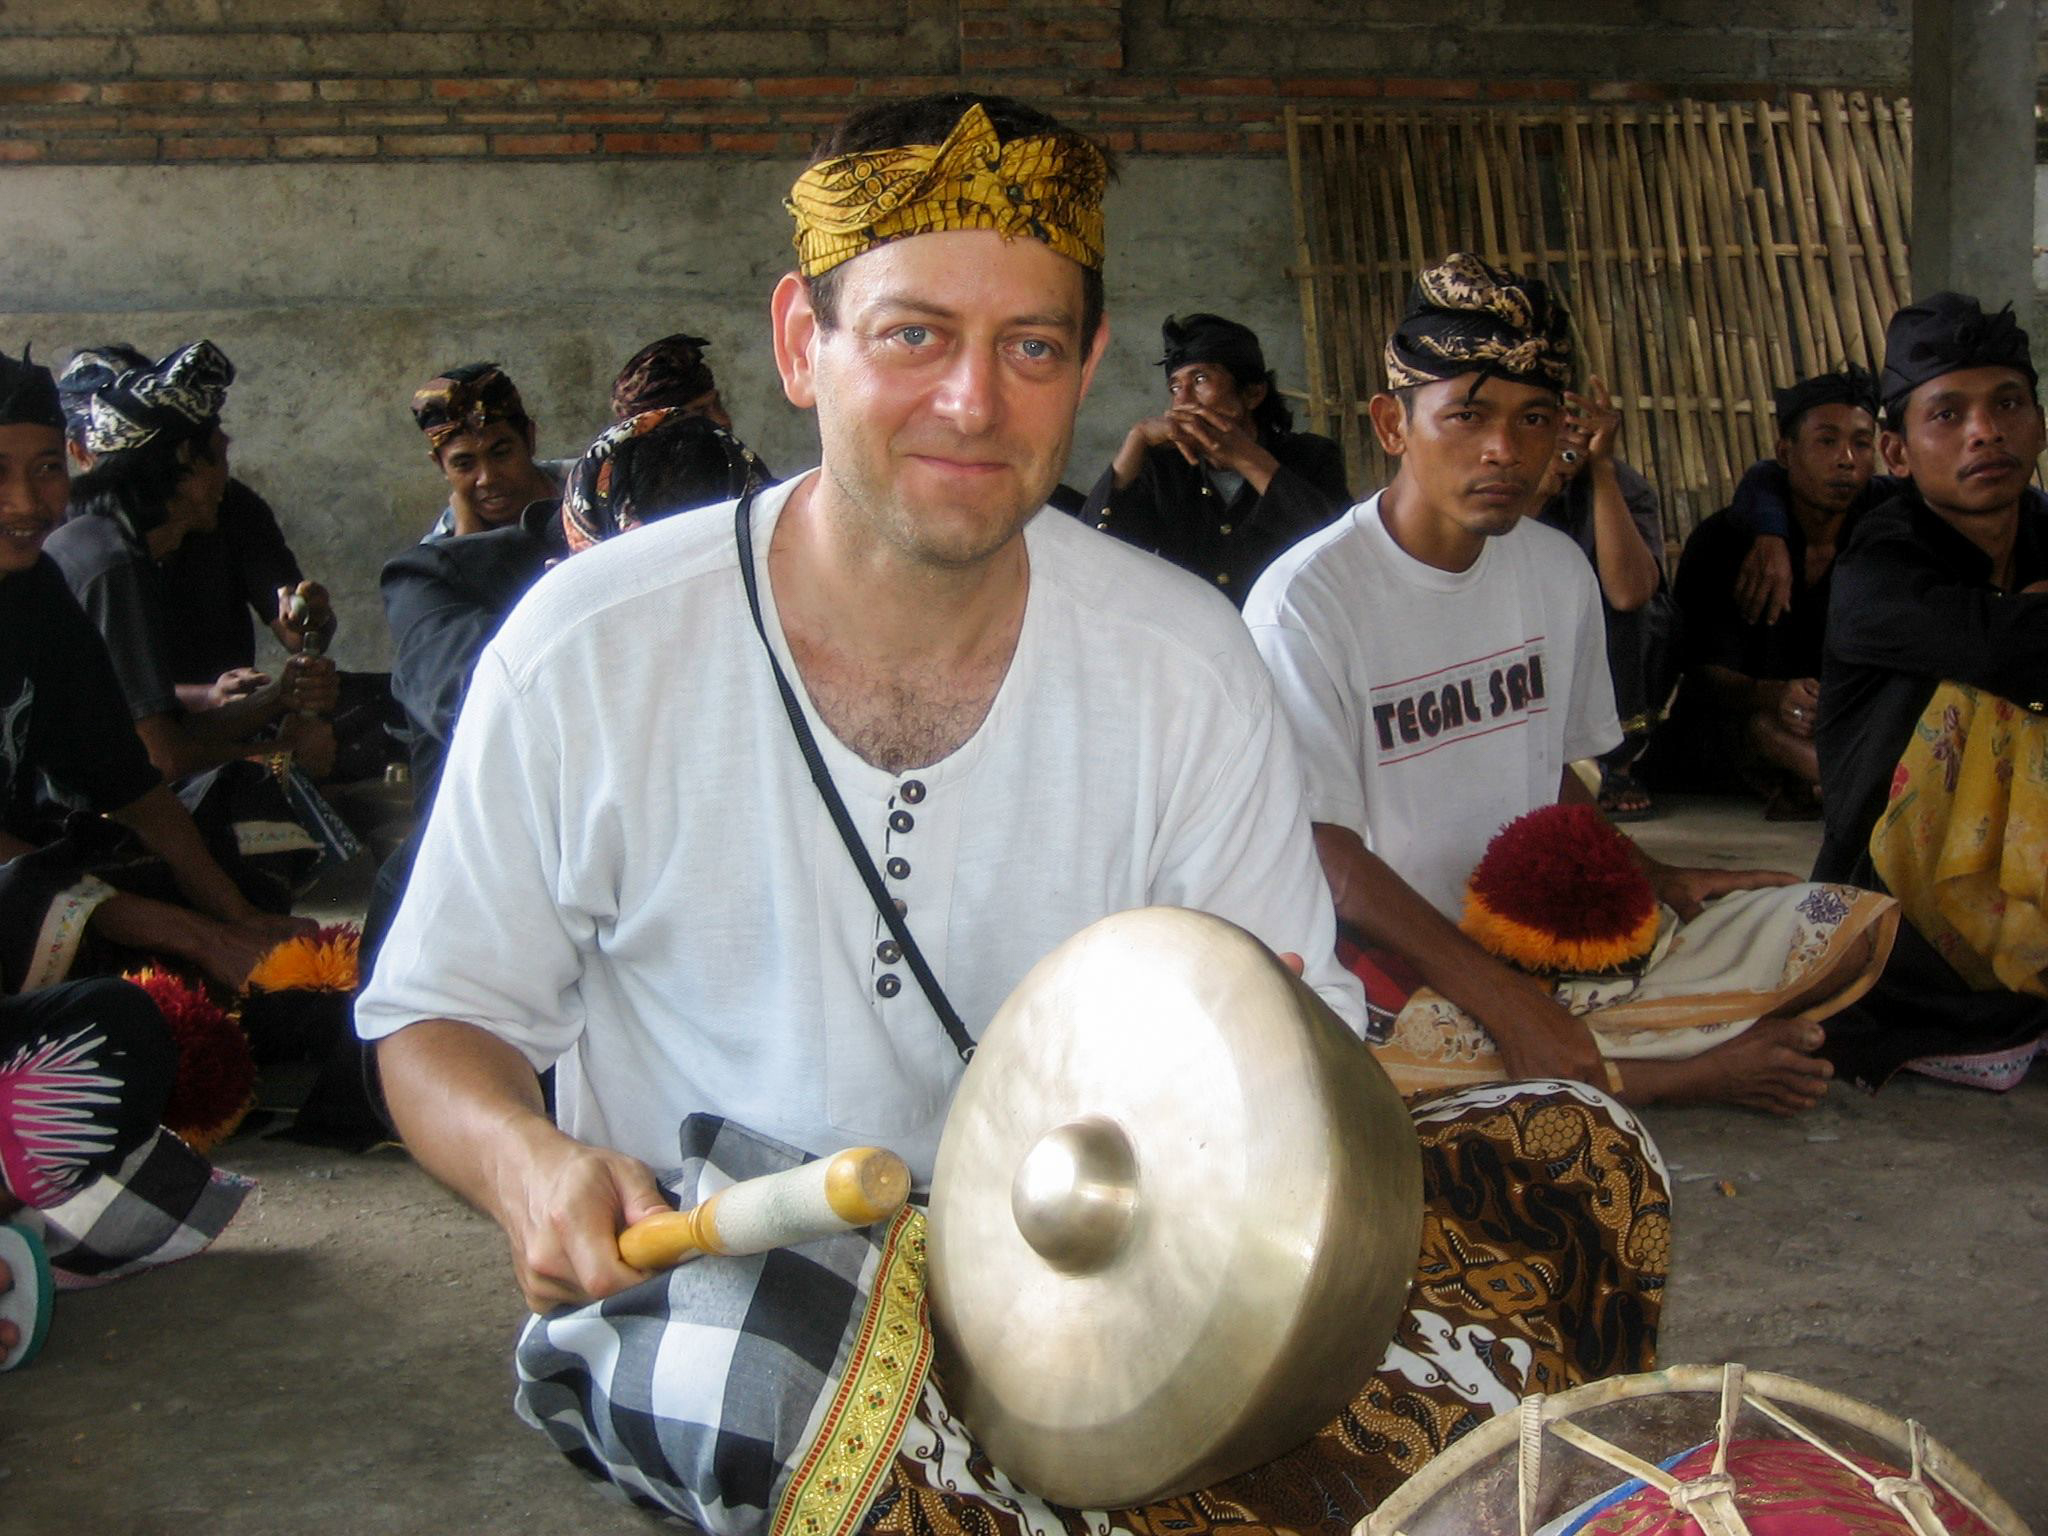 Joining the local gamelan orchestra, Bali, Indonesia